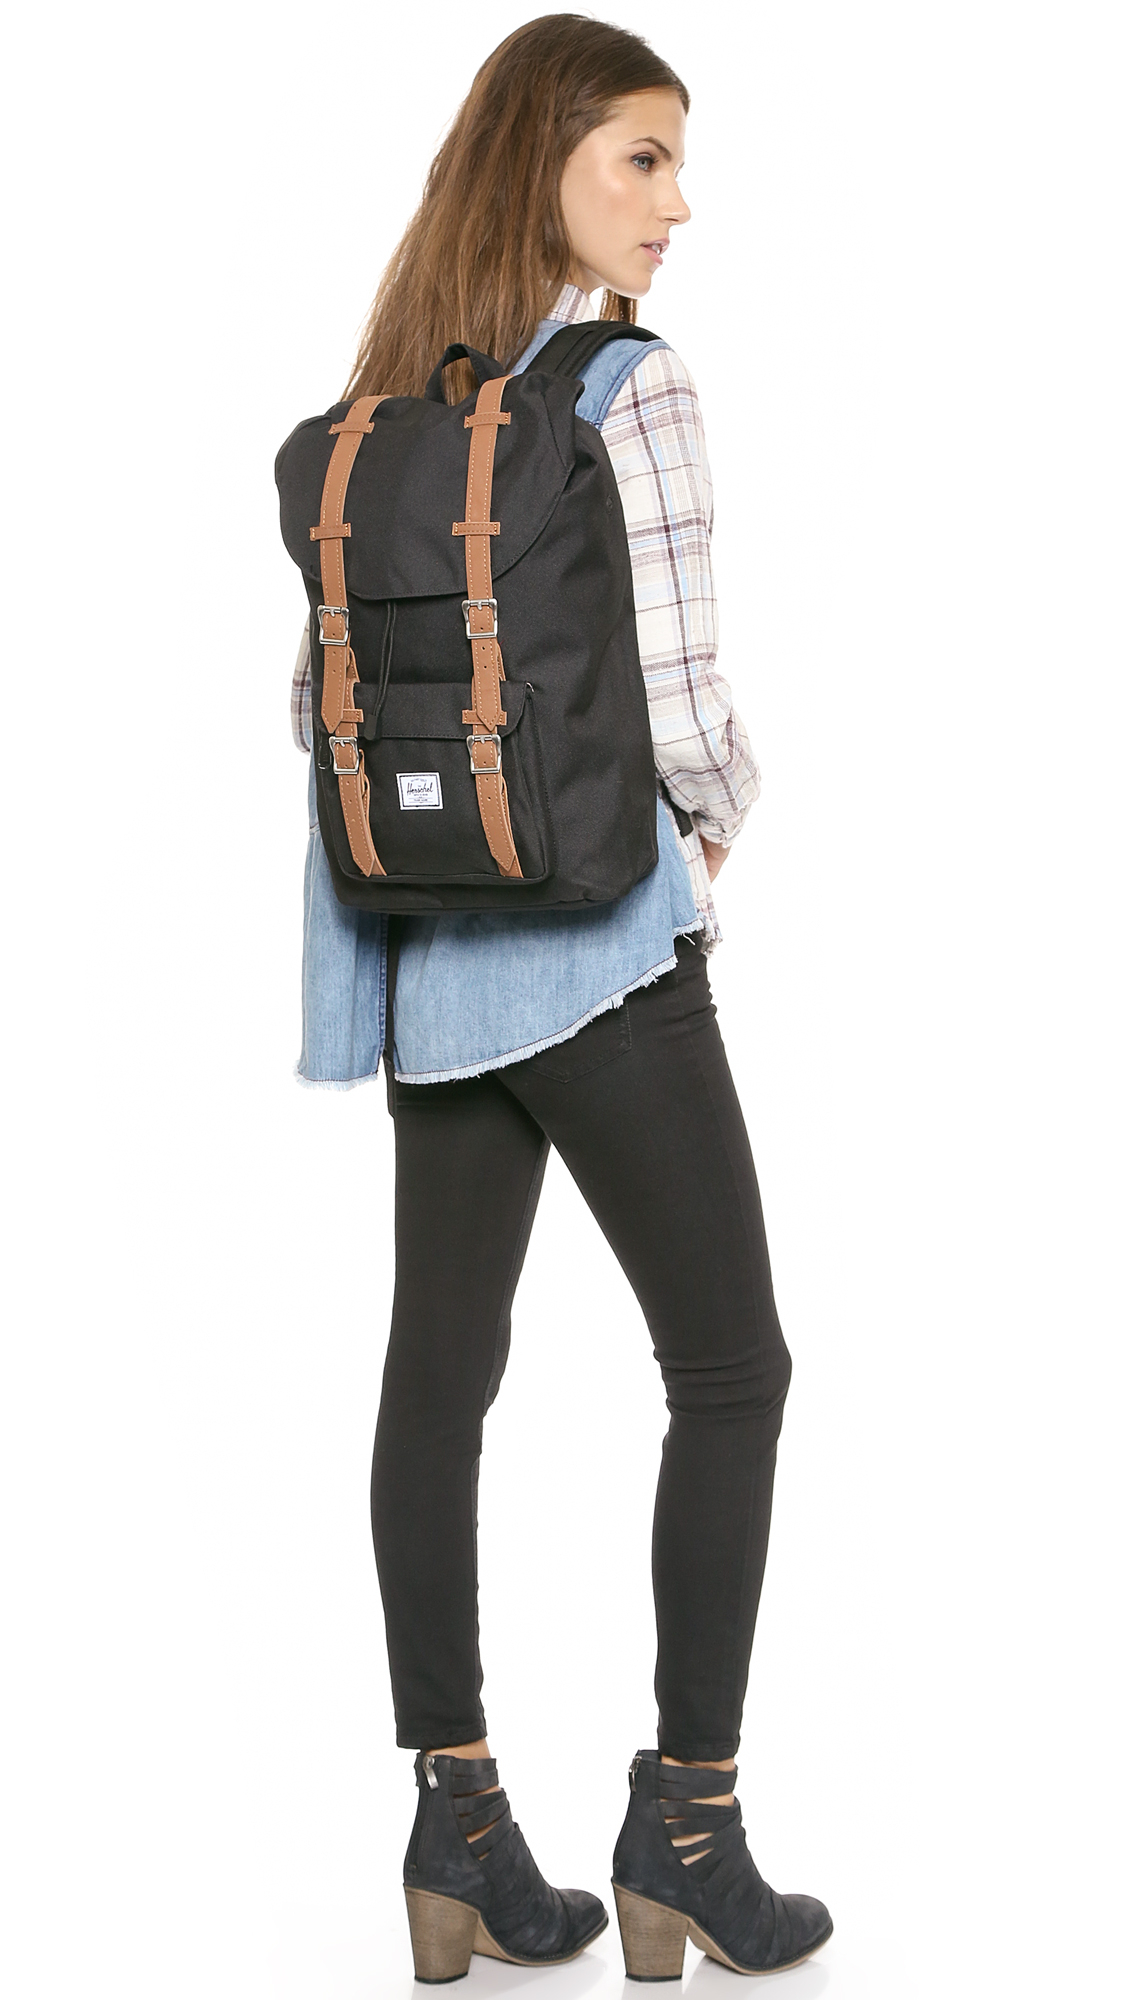 lyst herschel supply co little america mid backpack. Black Bedroom Furniture Sets. Home Design Ideas